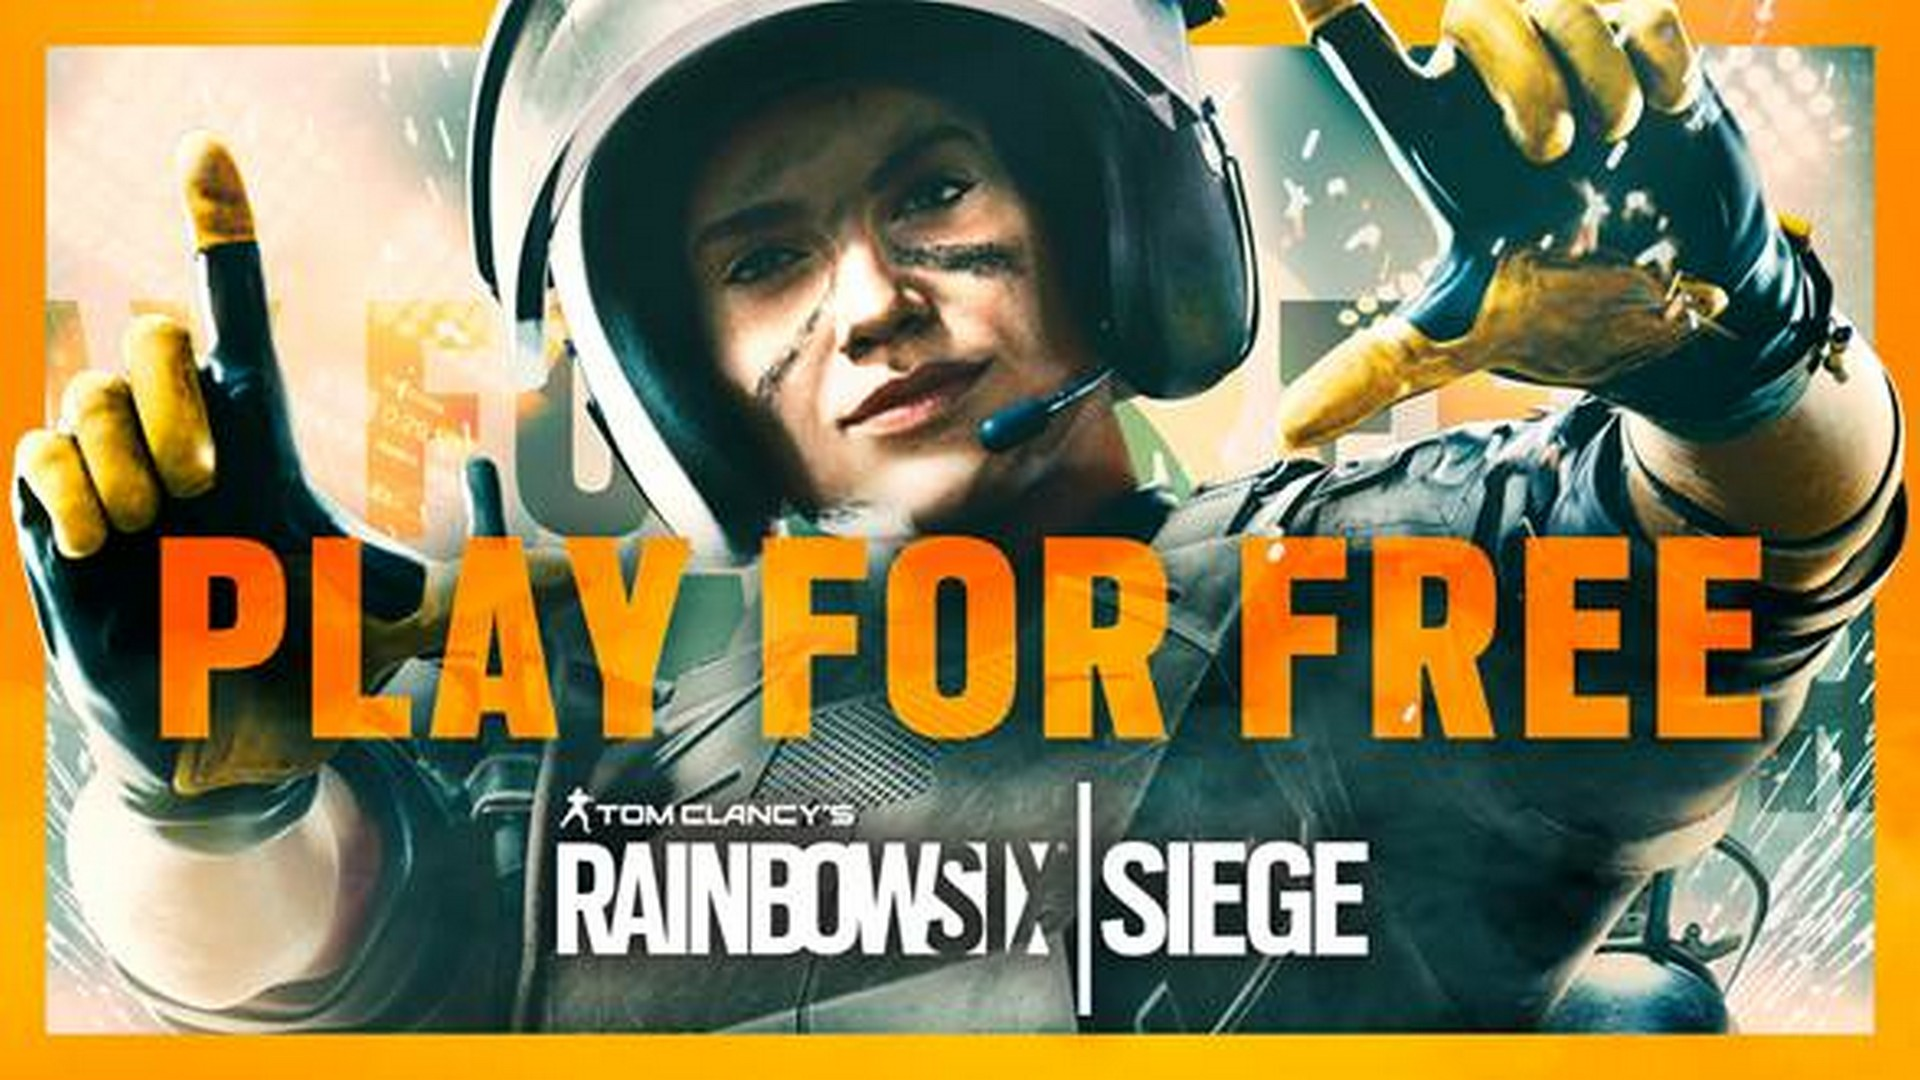 Tom Clancy's Rainbow Six Siege Announces Free Play Weekend Starting June 11th